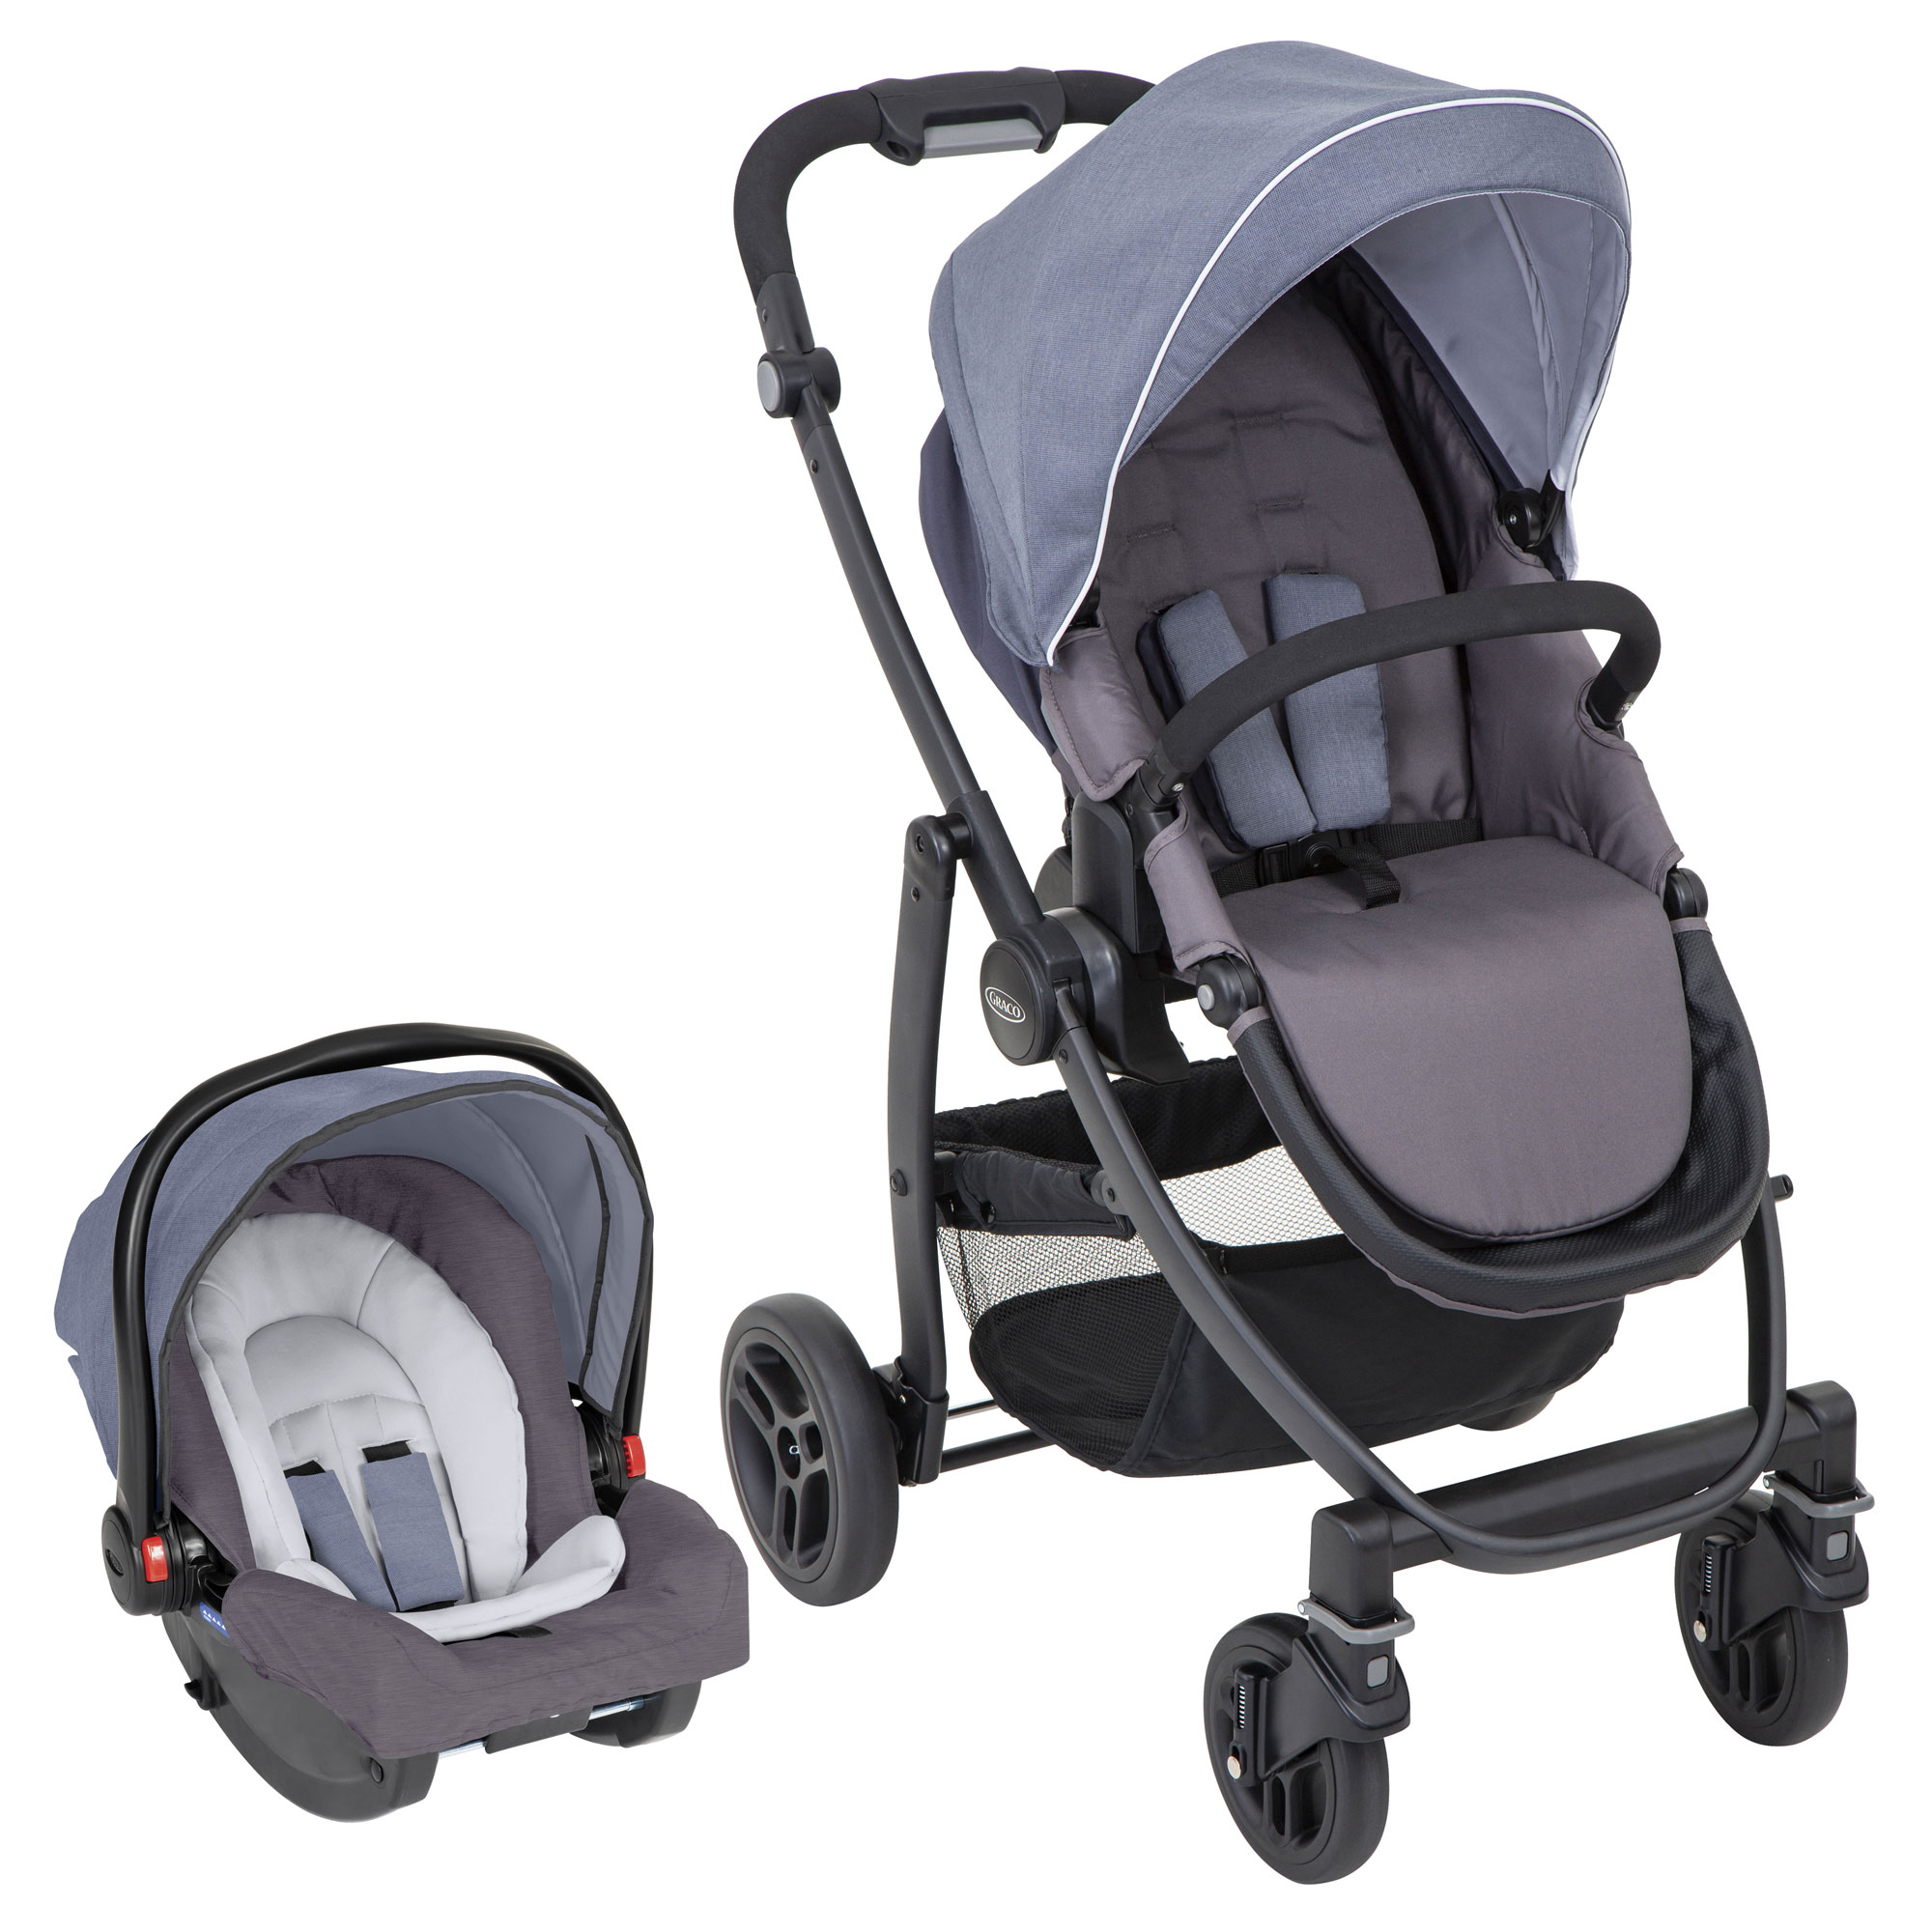 344f2c874 Graco Evo 2 in 1Travel System With Snugride-Mineral - Baby and Child ...